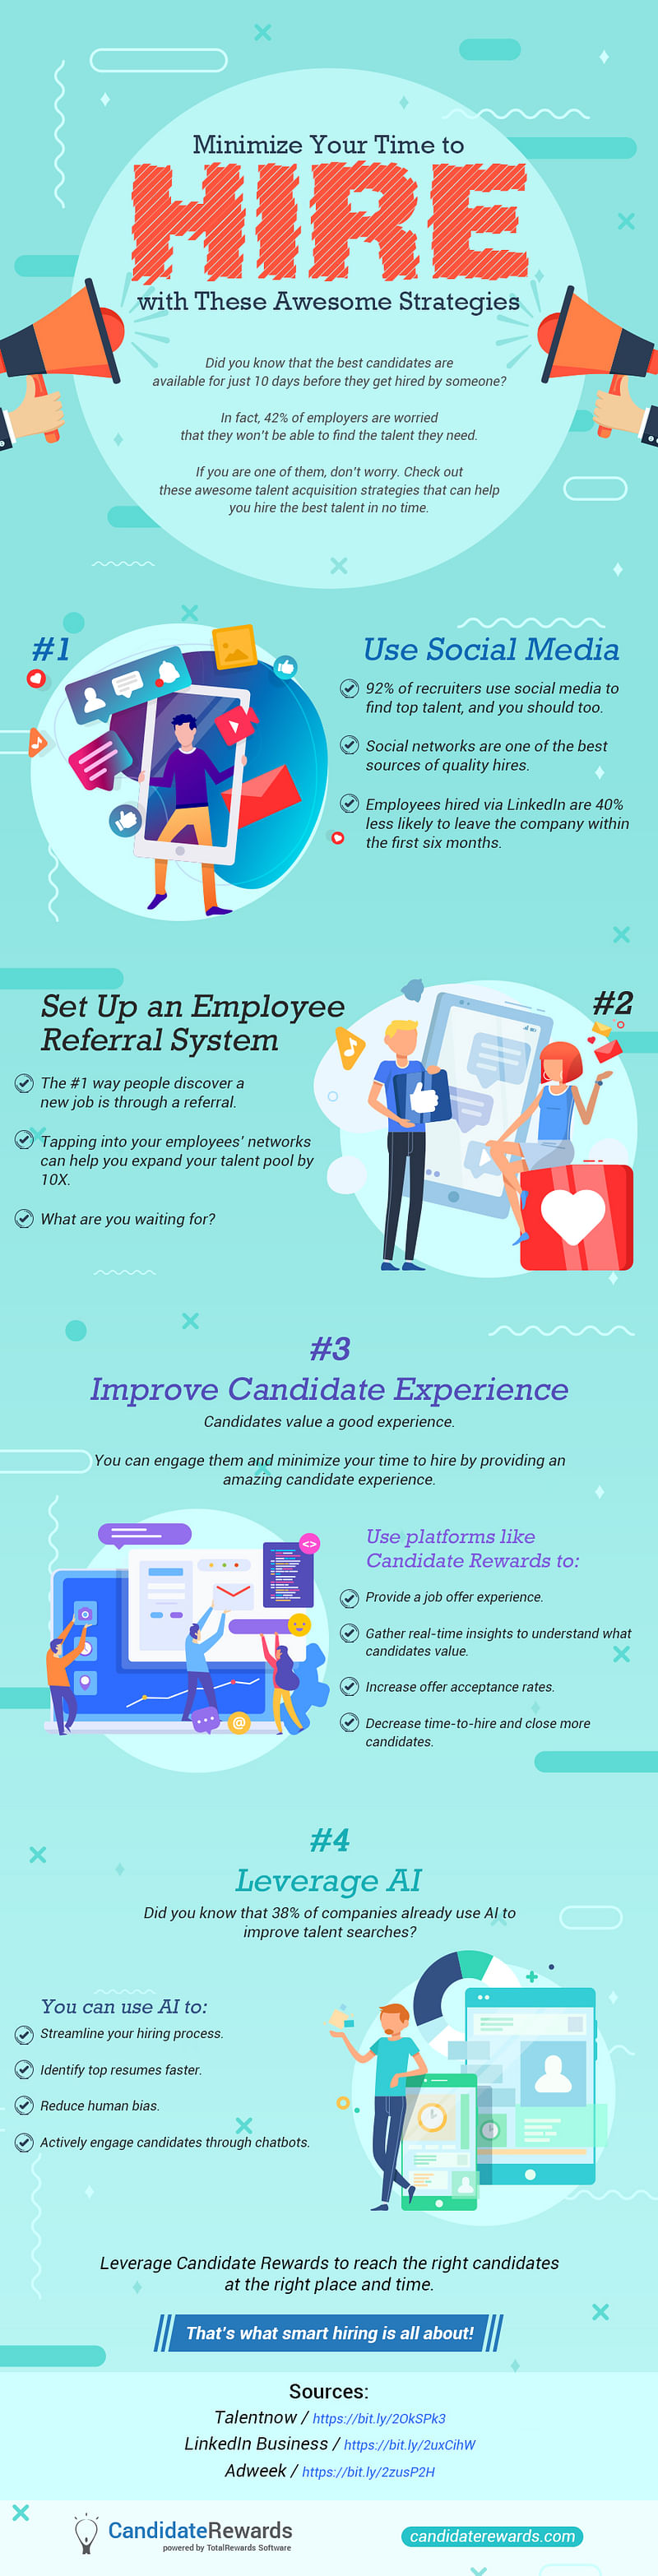 Minimize Your Time to Hire